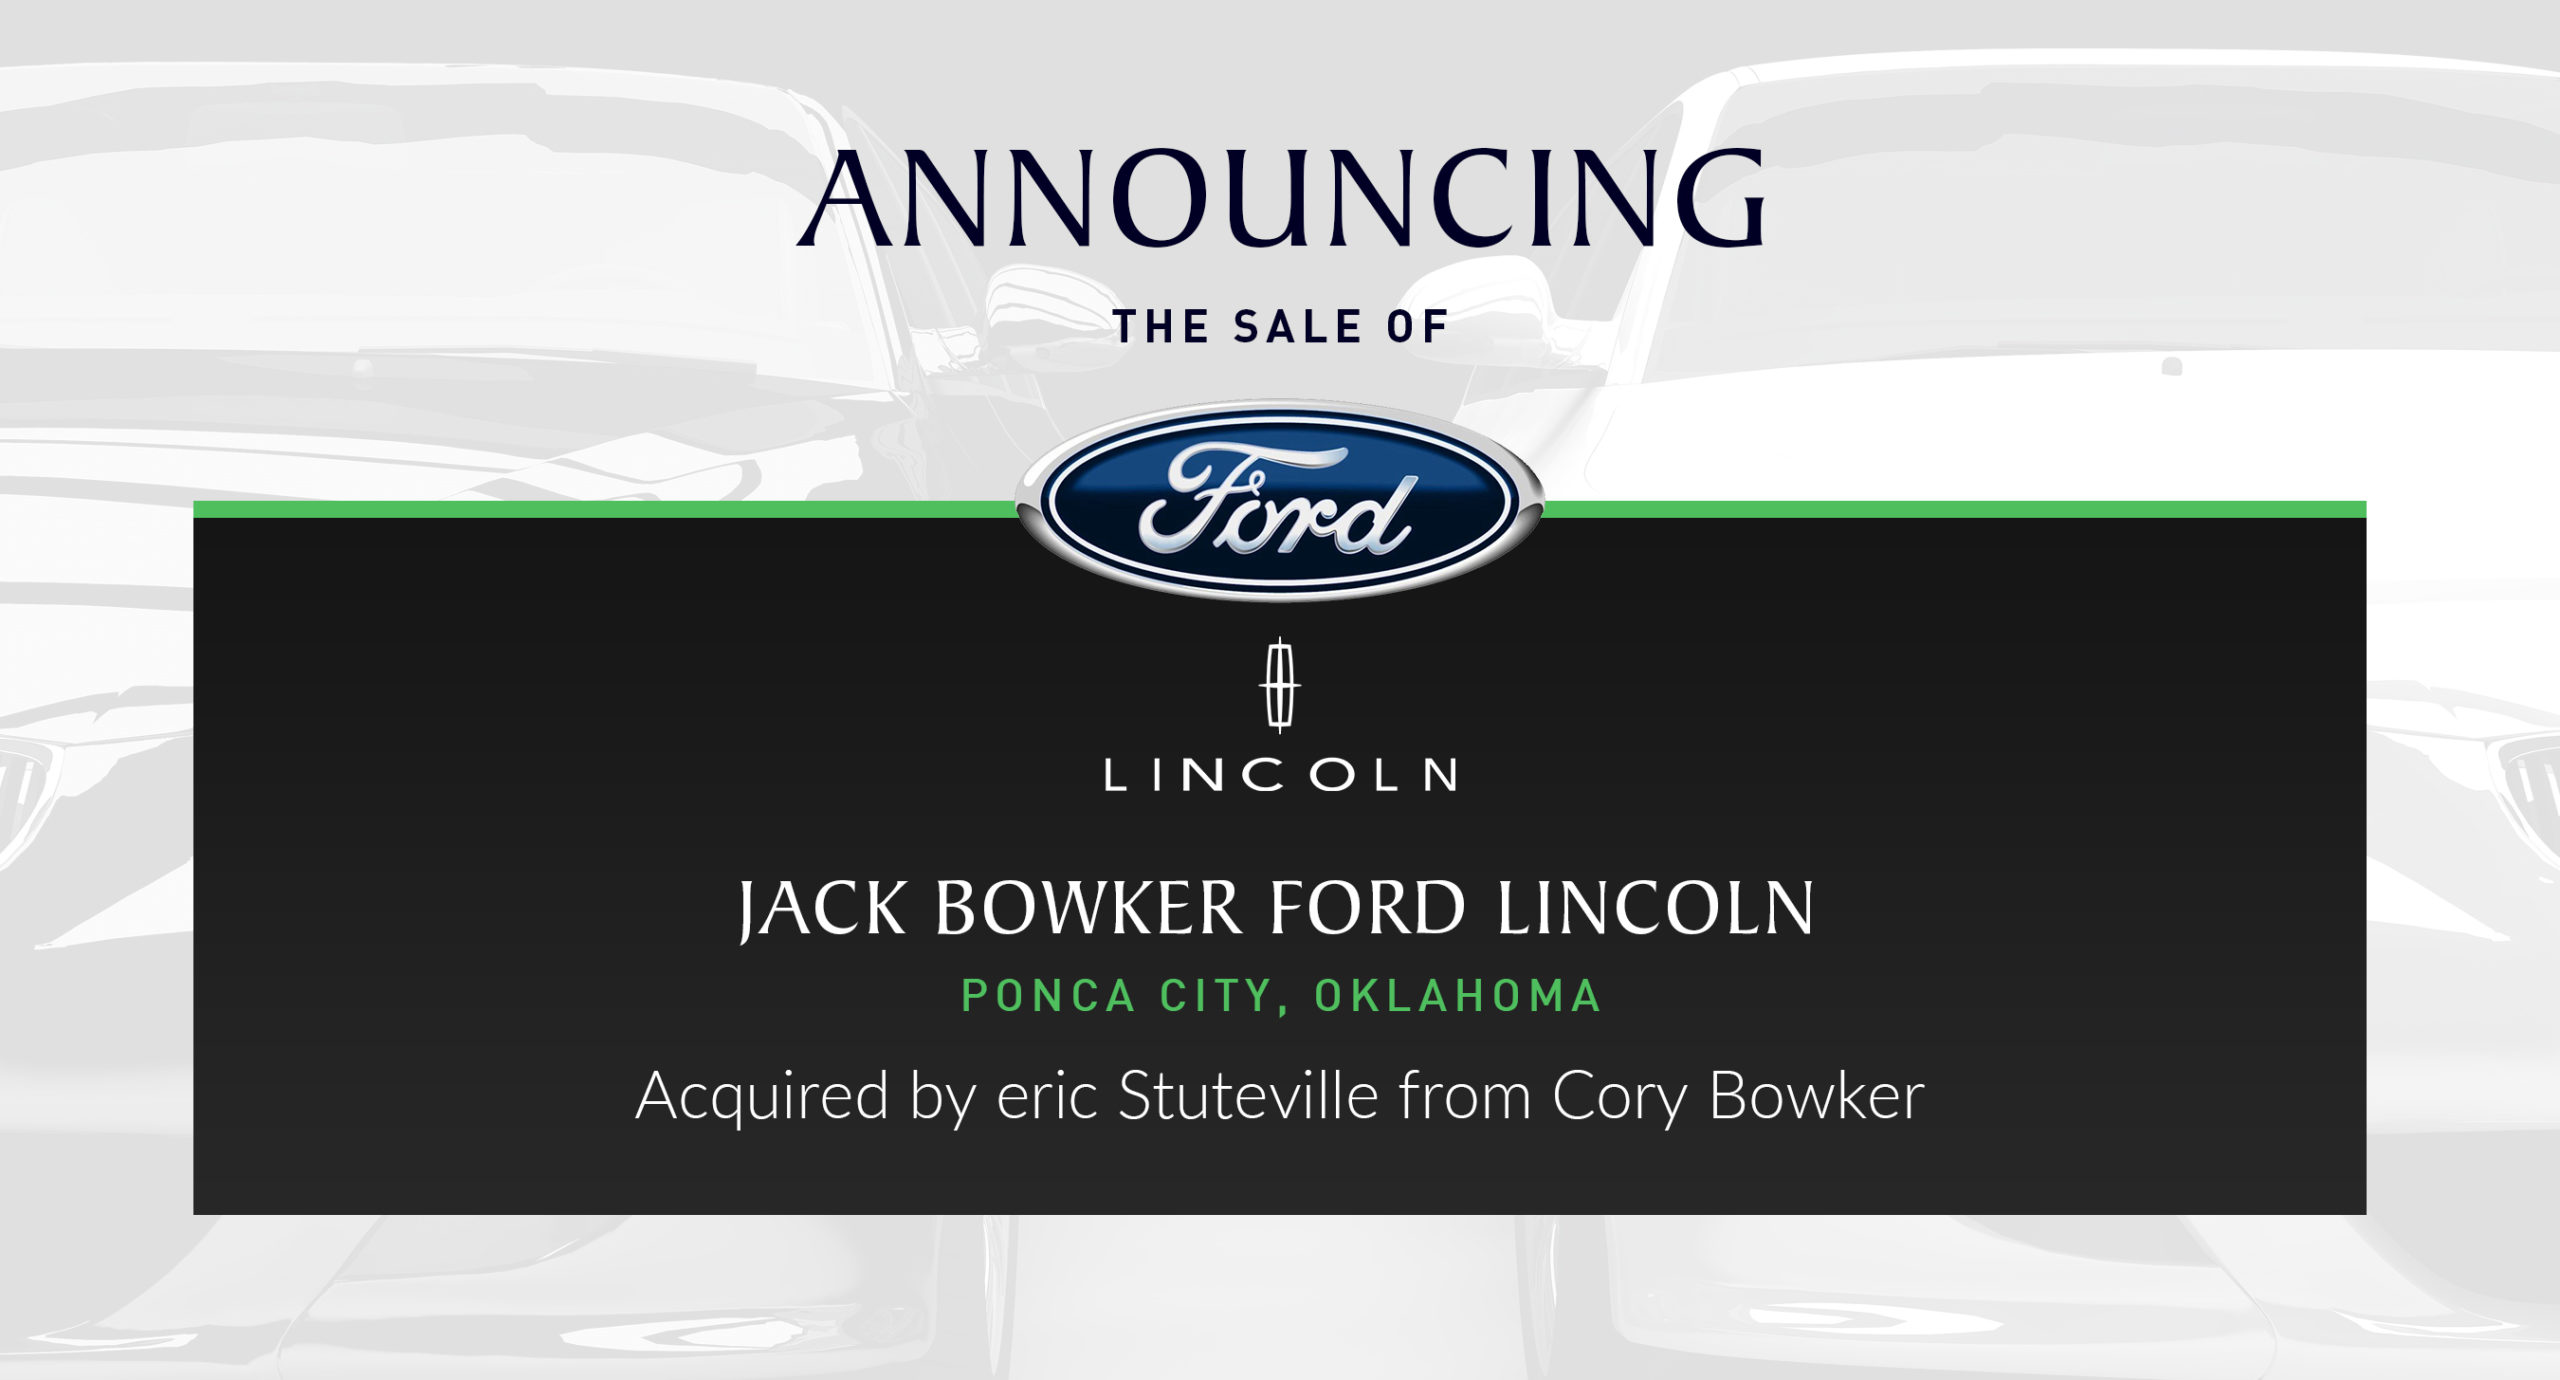 cory bowker sells jack bowker ford lincoln in oklahoma performance brokerage services cory bowker sells jack bowker ford